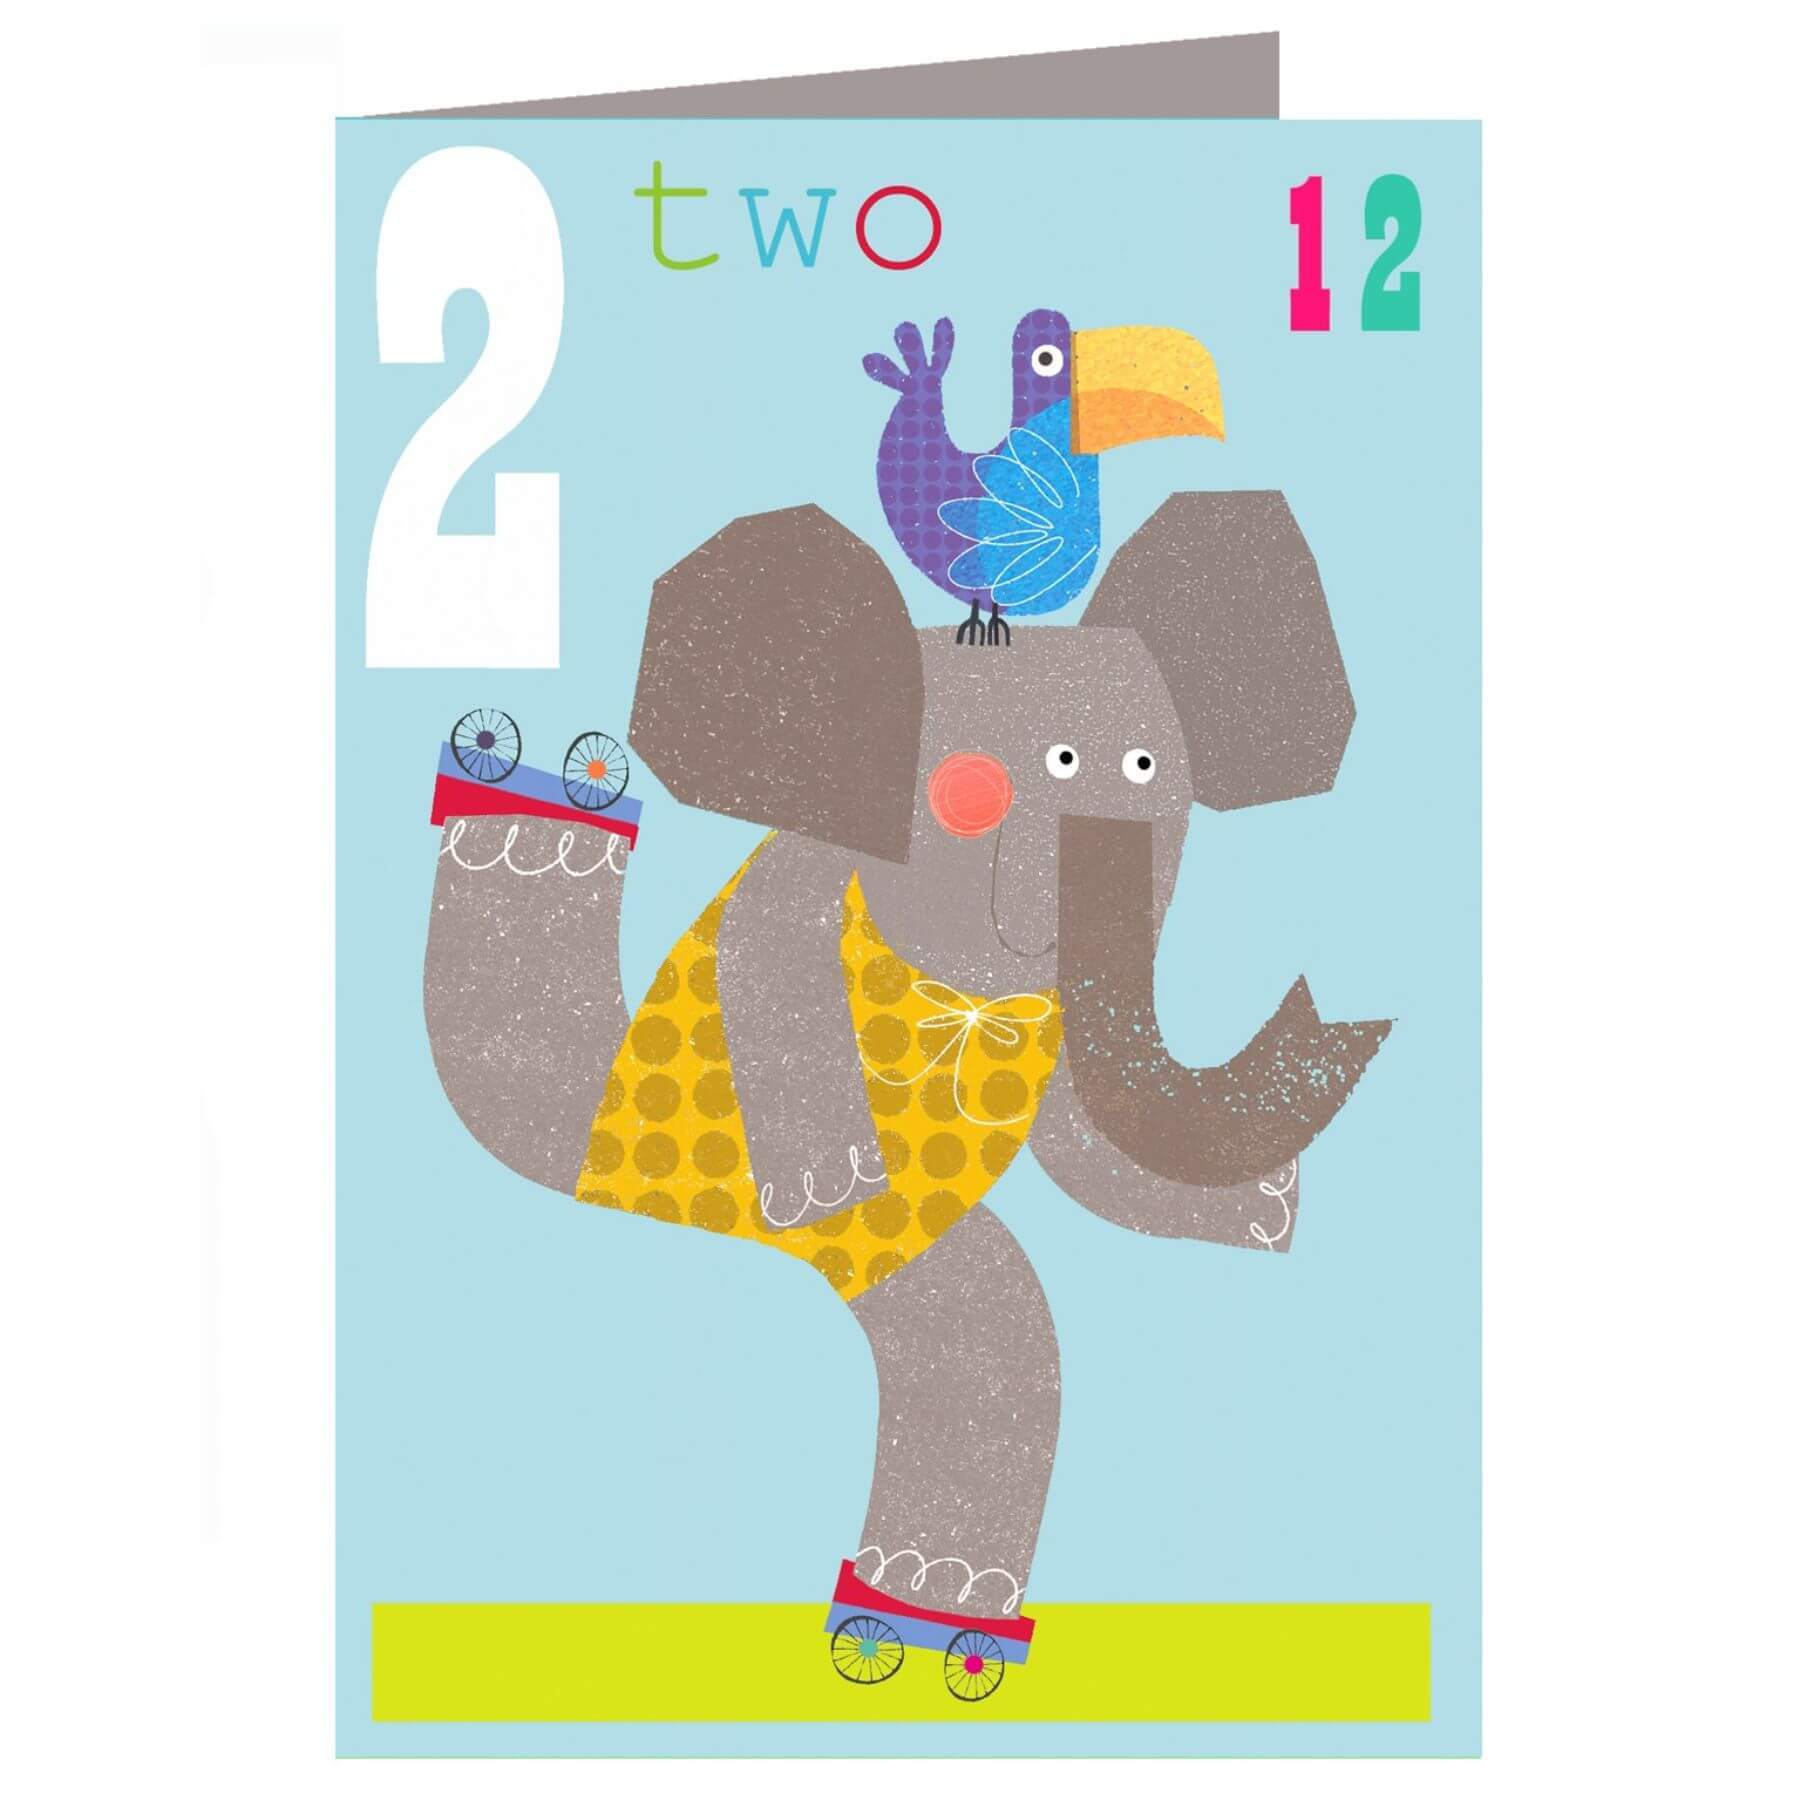 The Square Card Company Wheelie Birthday Card - Two Rollerskaters